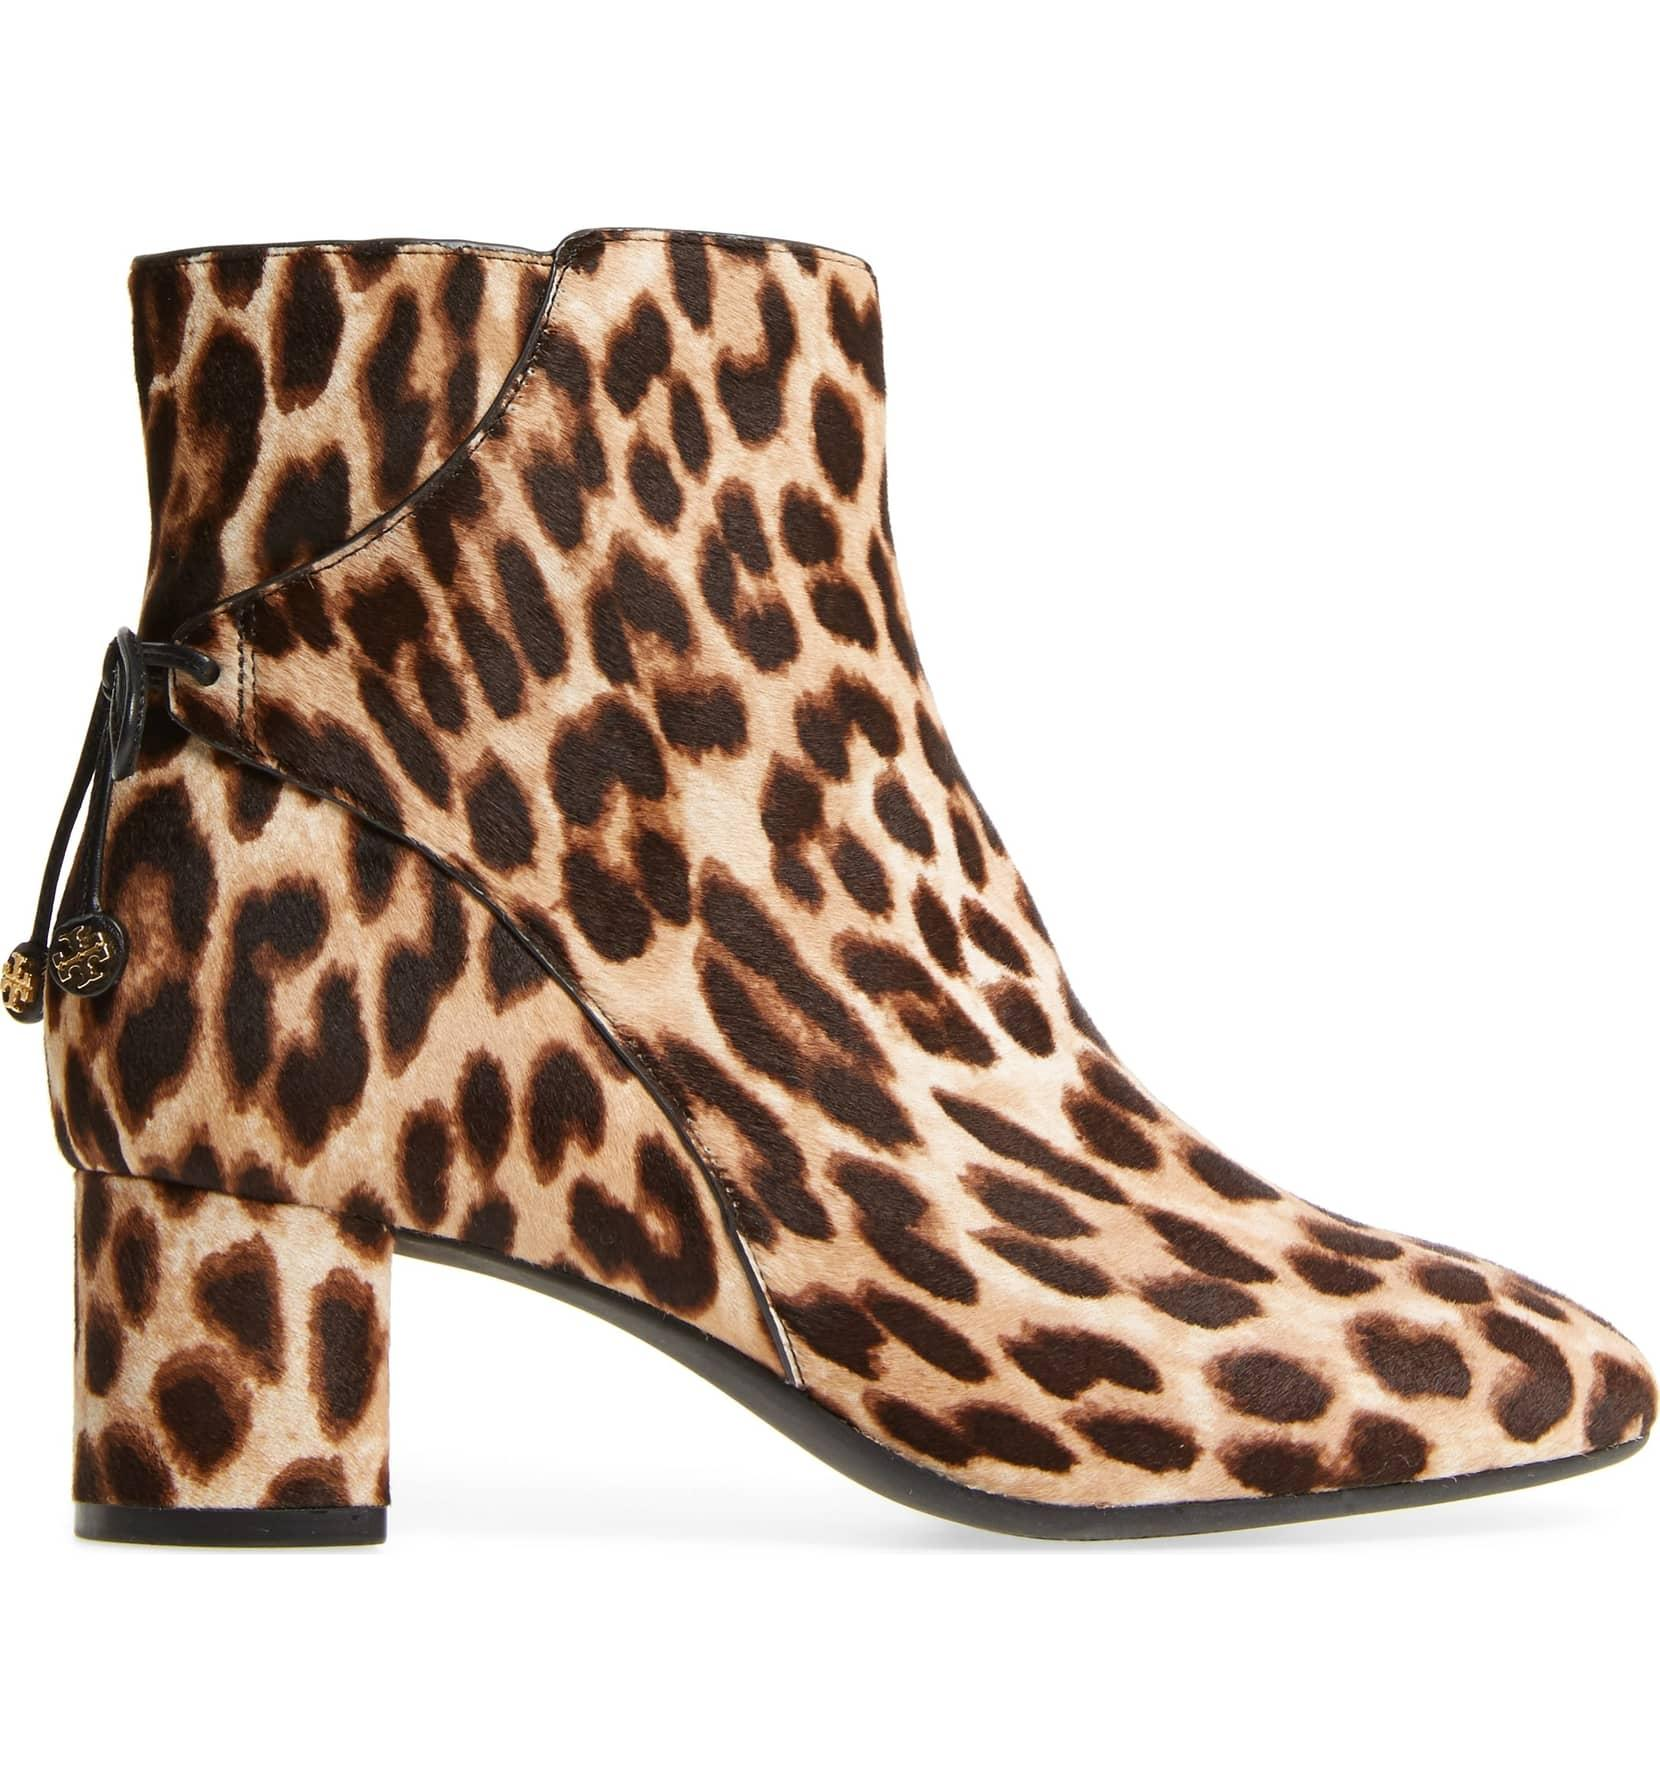 cf4d3f4dd720 ... Tory Burch Leopard New Fall Winter Ankle Box Boots Booties Boots Booties  Boots  ...